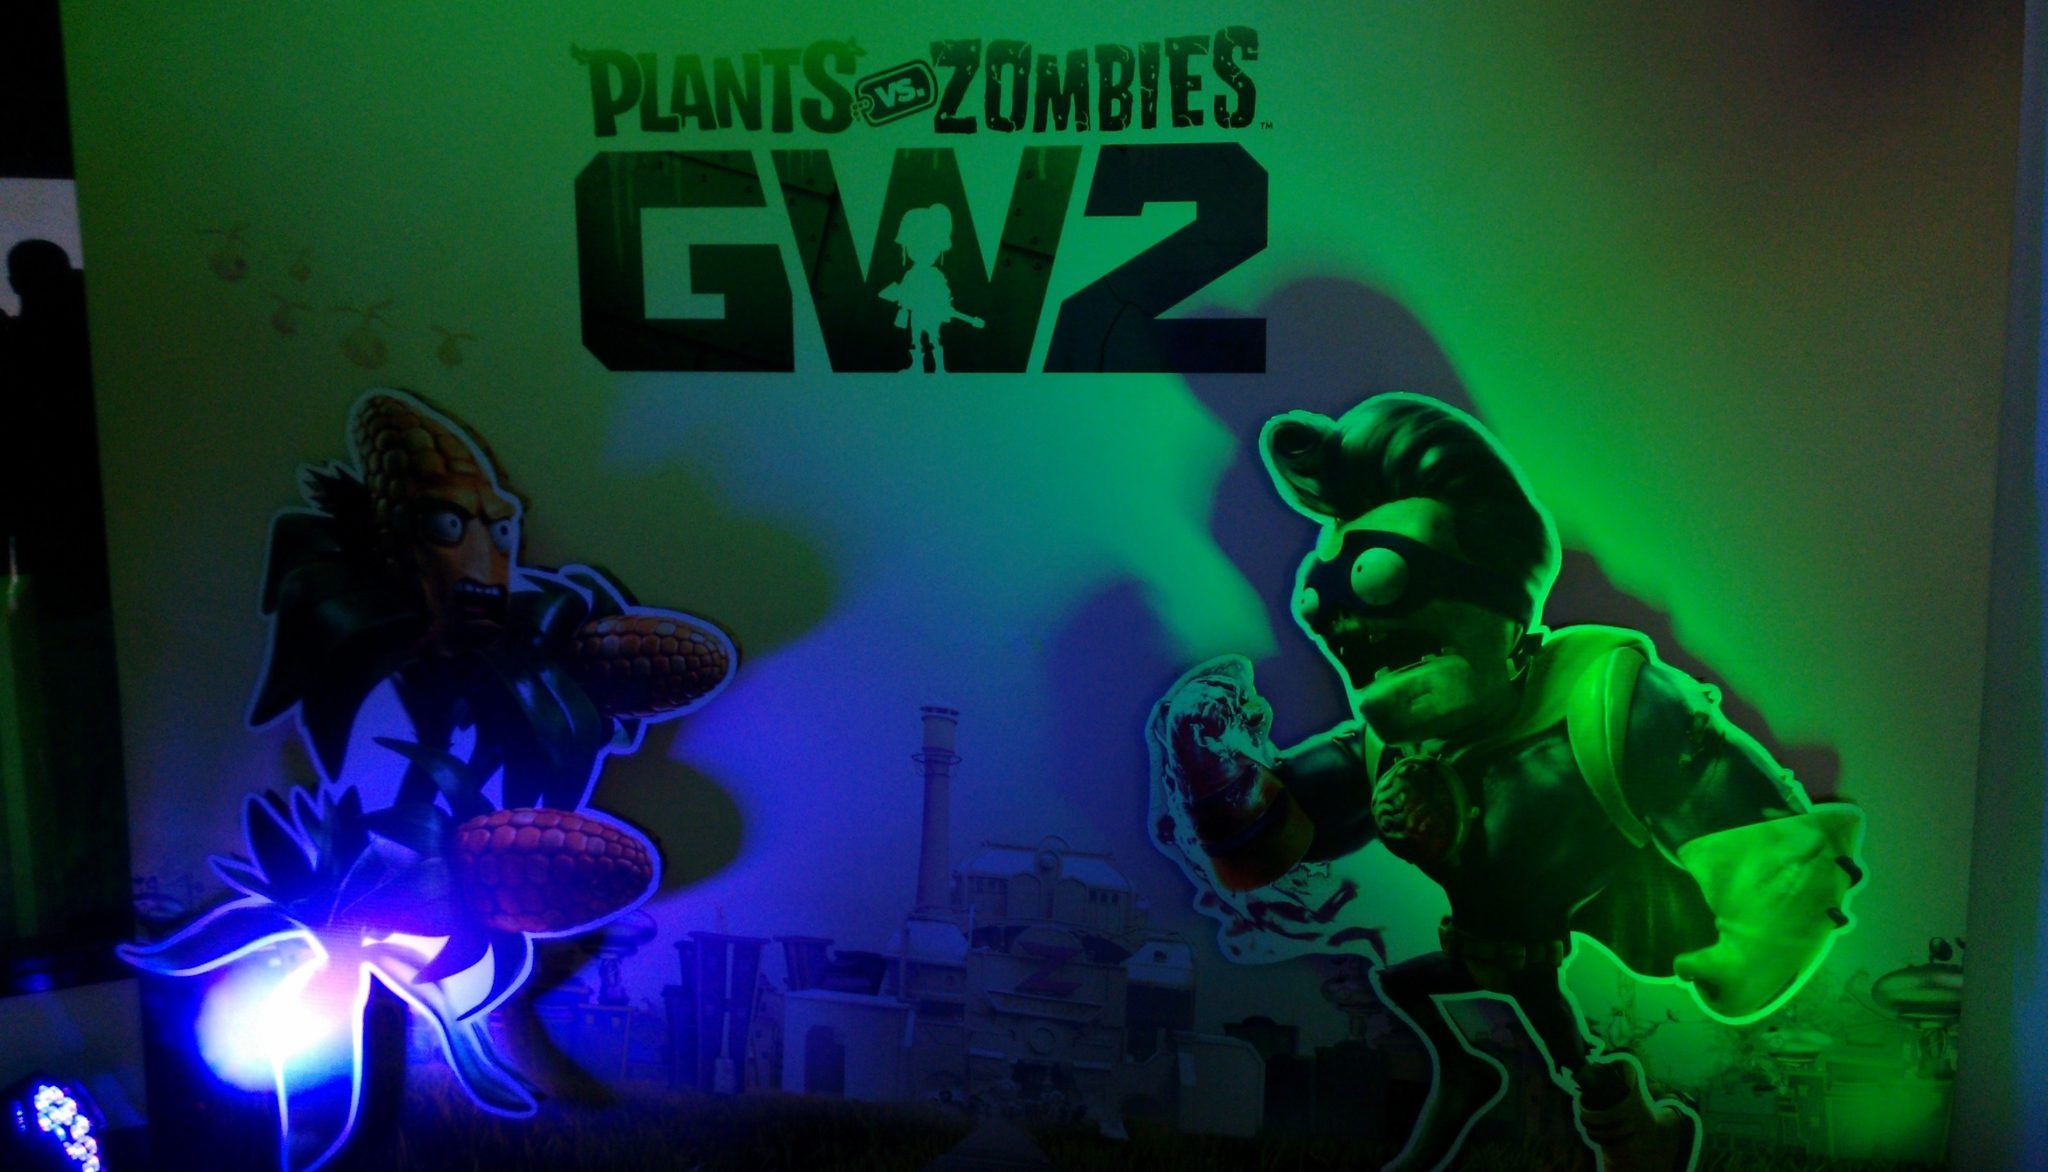 Ea present plants vs zombies garden warfare 2 en colombia gamerfocus Plants vs zombies garden warfare 2 event calendar